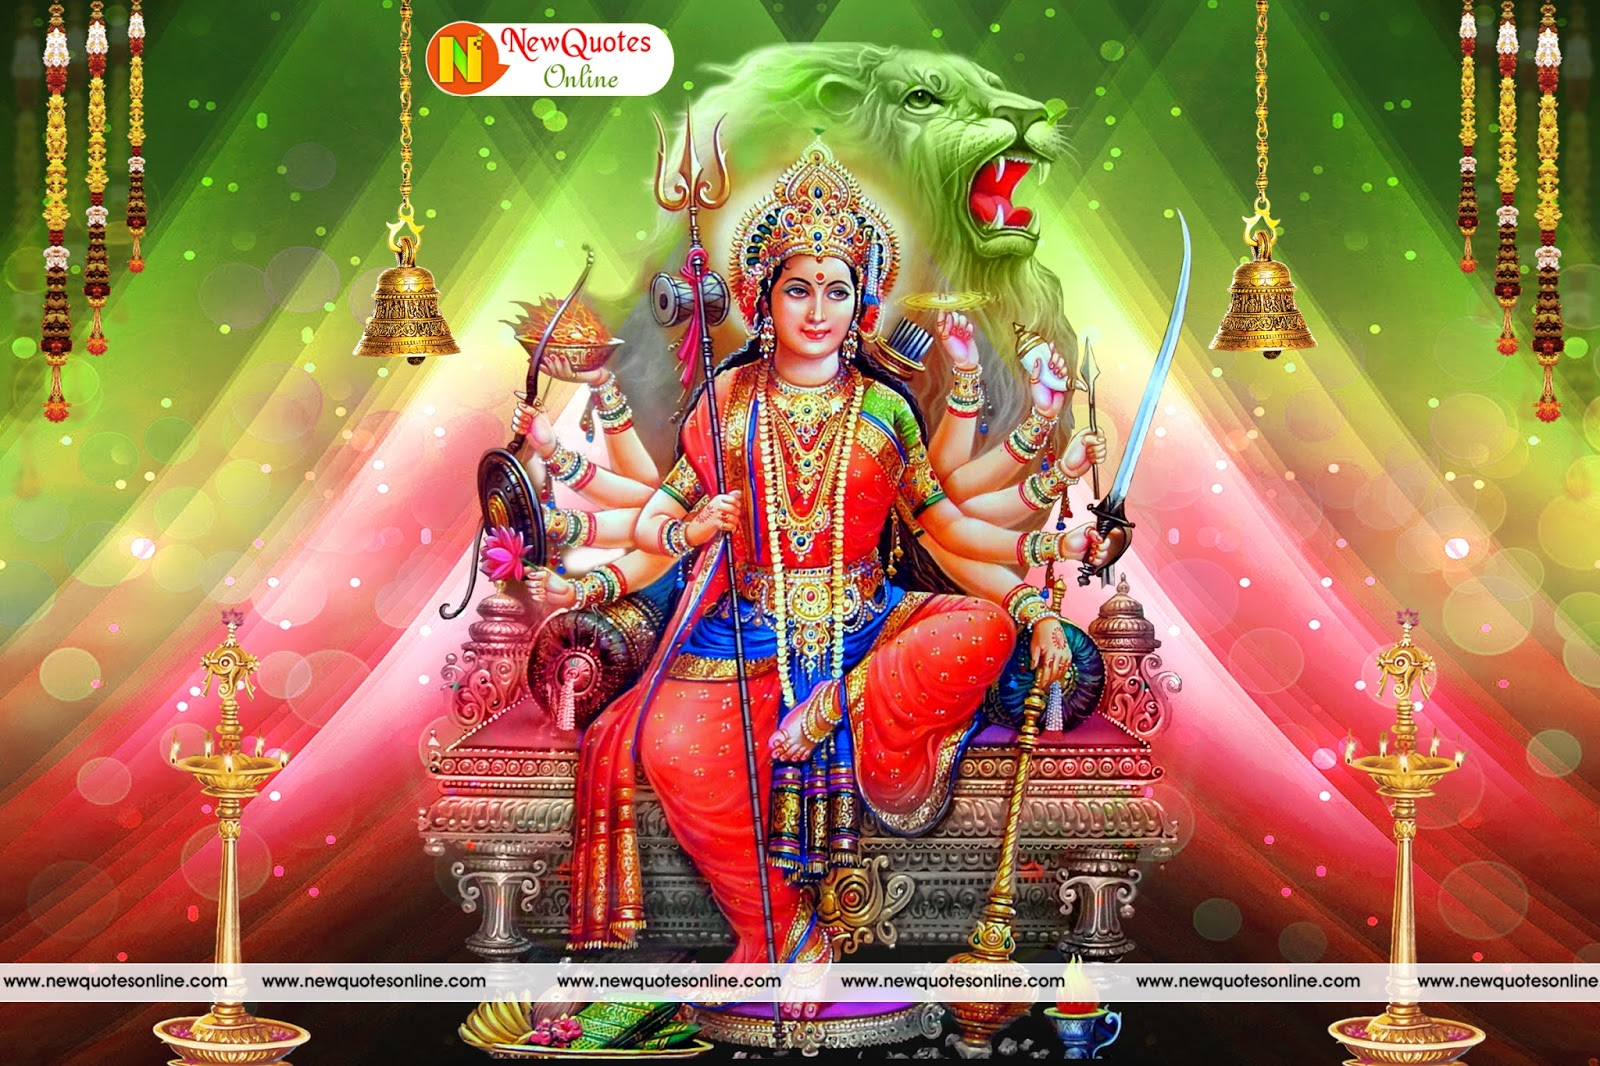 Vinayaka Chavithi Hd Wallpapers Best Hd Wallpapers Of Durga Devi And Telugu Quotes Wishes